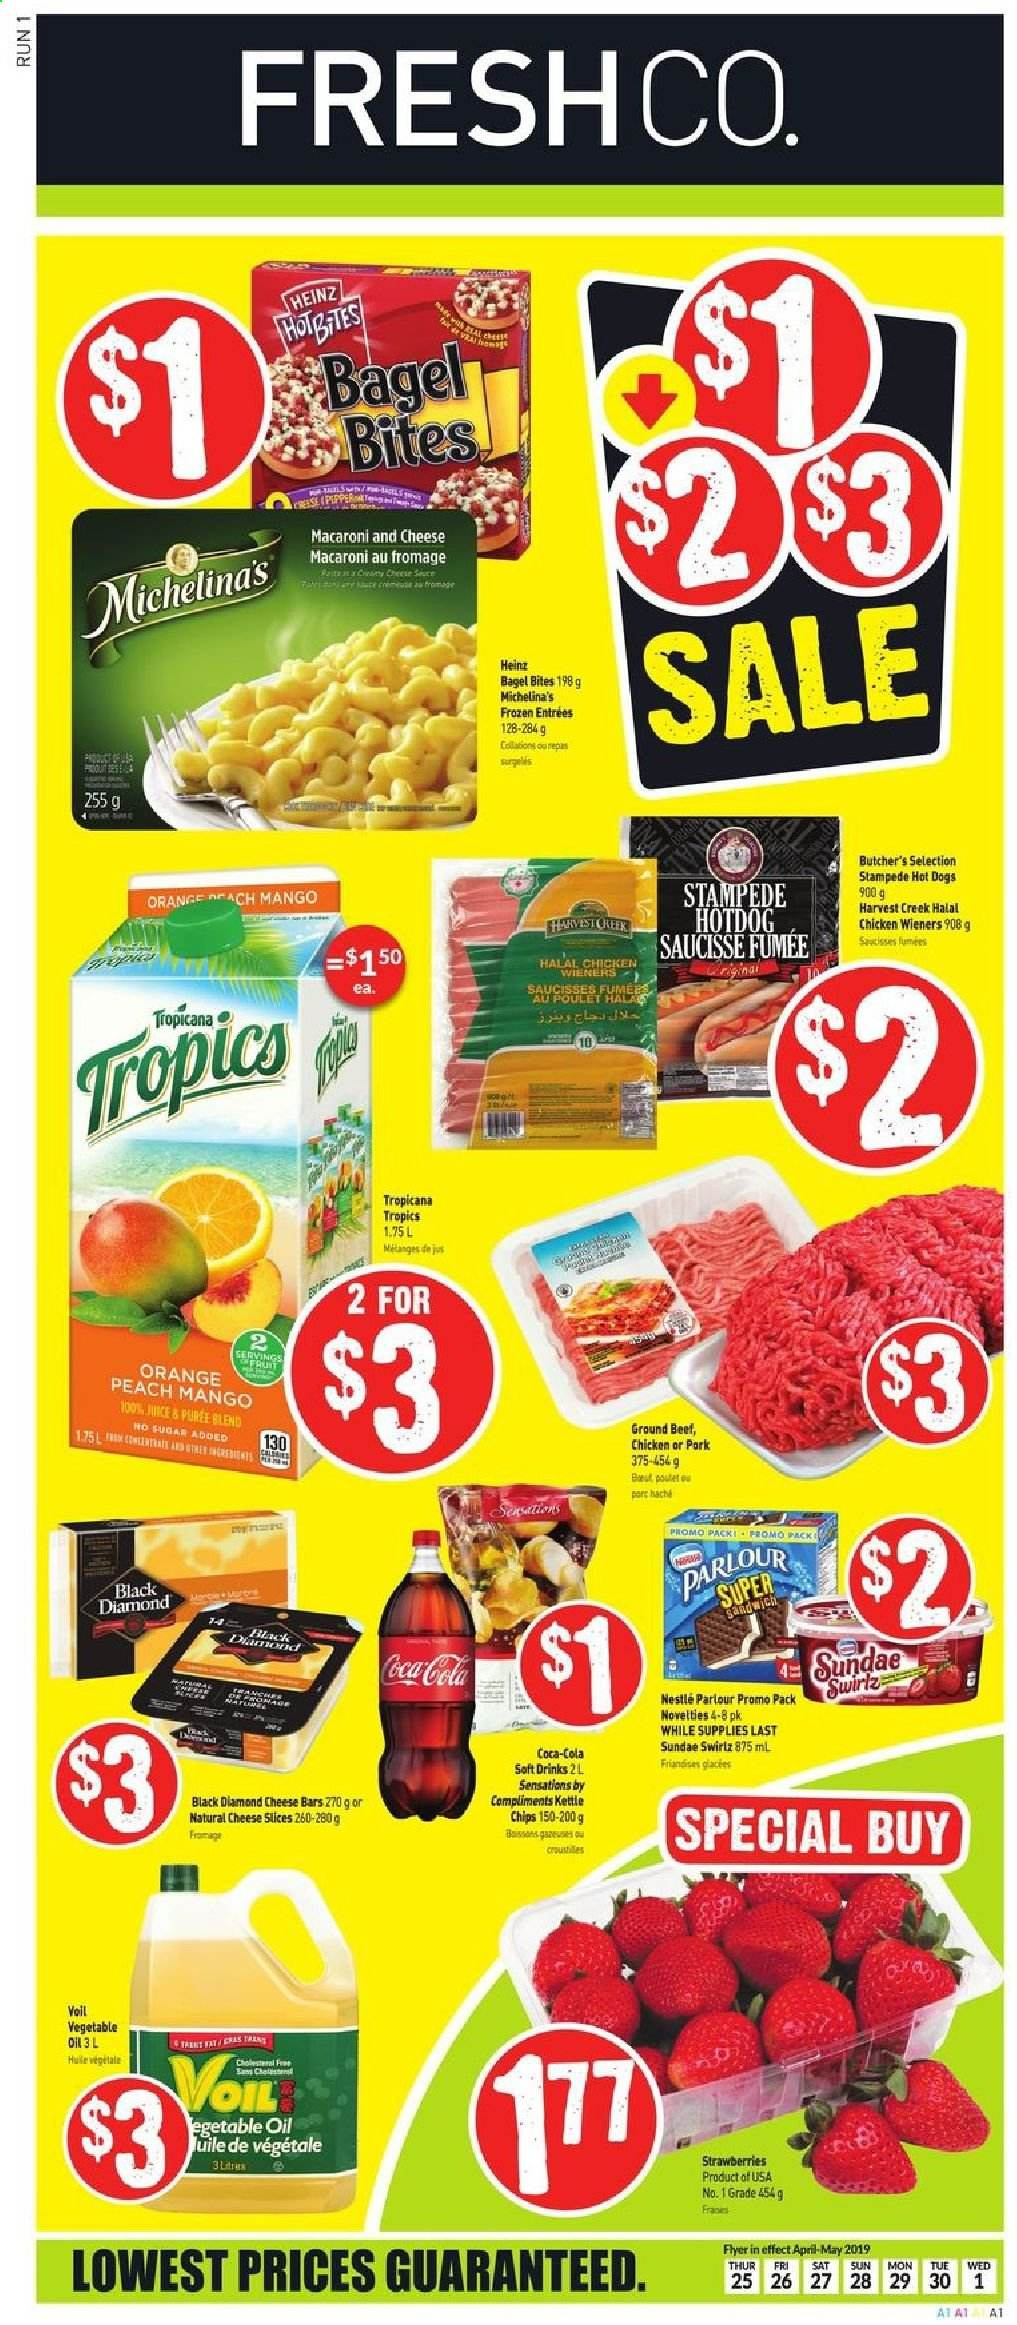 FreshCo. Flyer  - April 25, 2019 - May 01, 2019. Page 1.